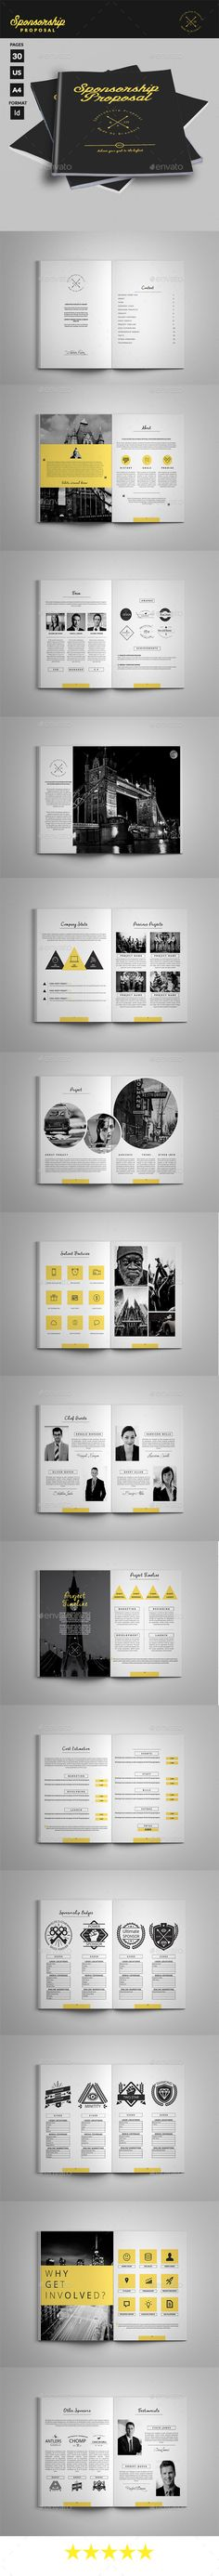 Proposal | Business Proposal Template, Proposal Templates And